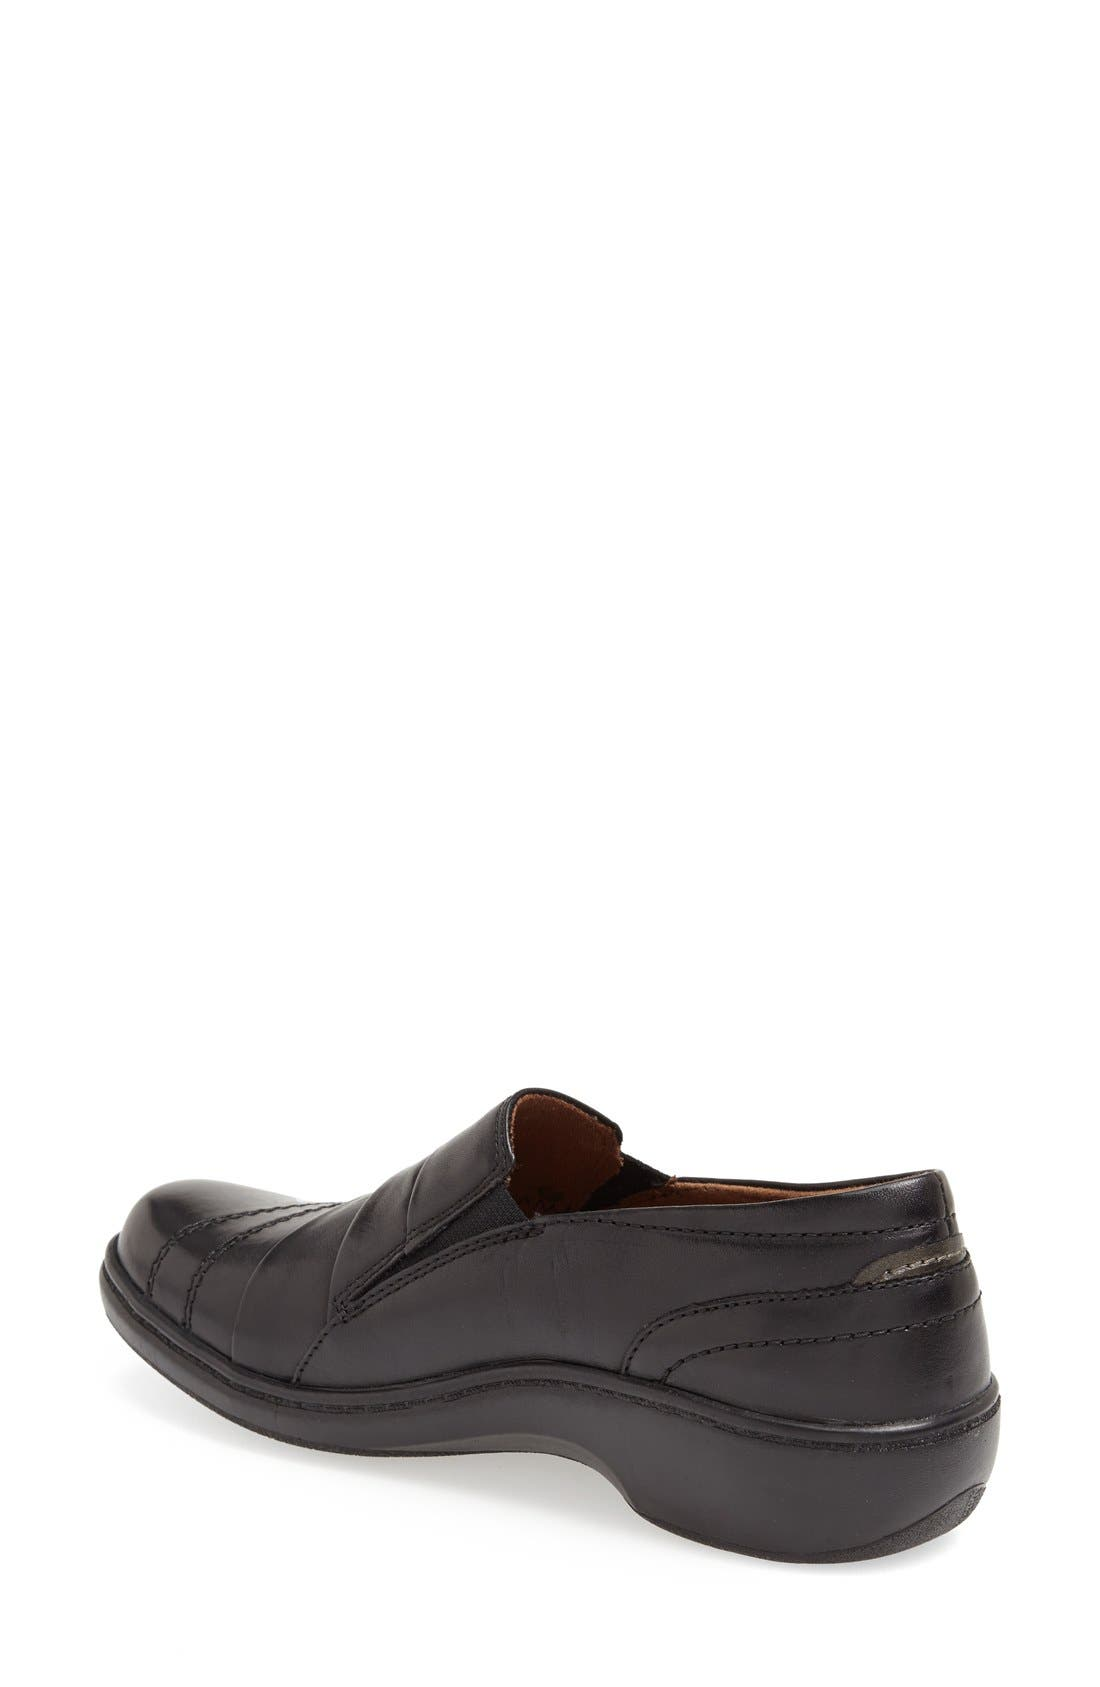 Alternate Image 2  - Aravon 'Danielle' Loafer Flat (Women)